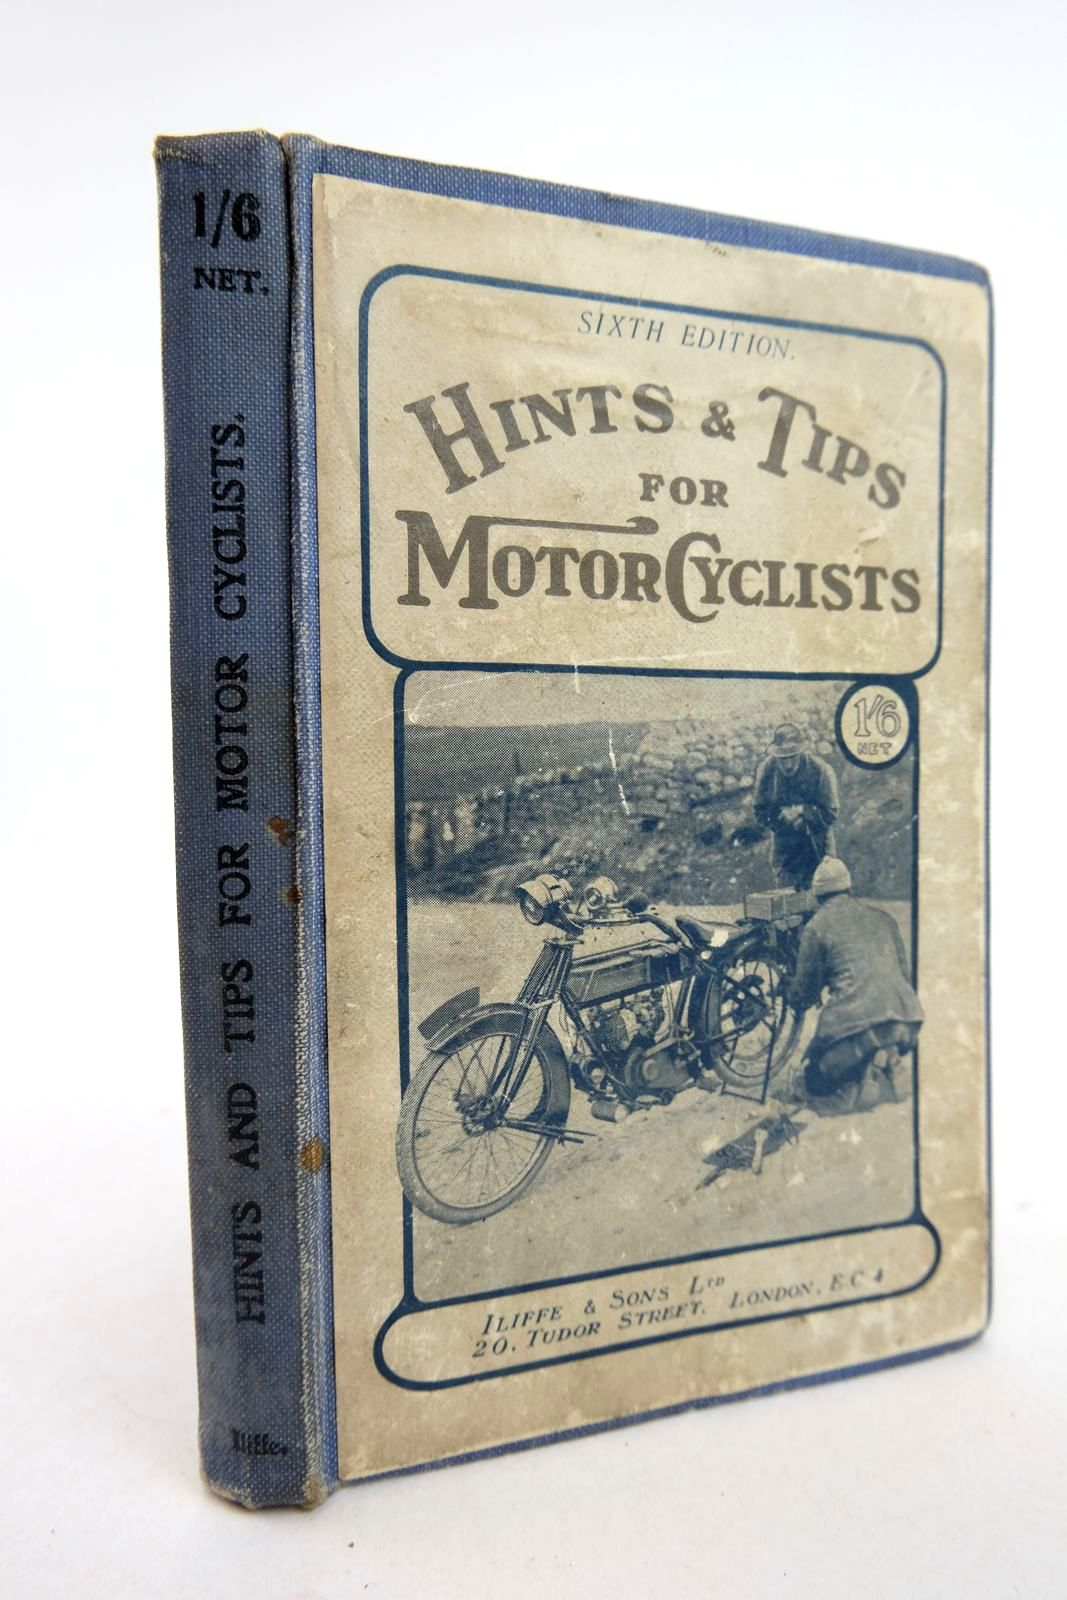 Photo of HINTS & TIPS FOR MOTOR CYCLISTS published by Iliffe & Sons Limited (STOCK CODE: 2133282)  for sale by Stella & Rose's Books